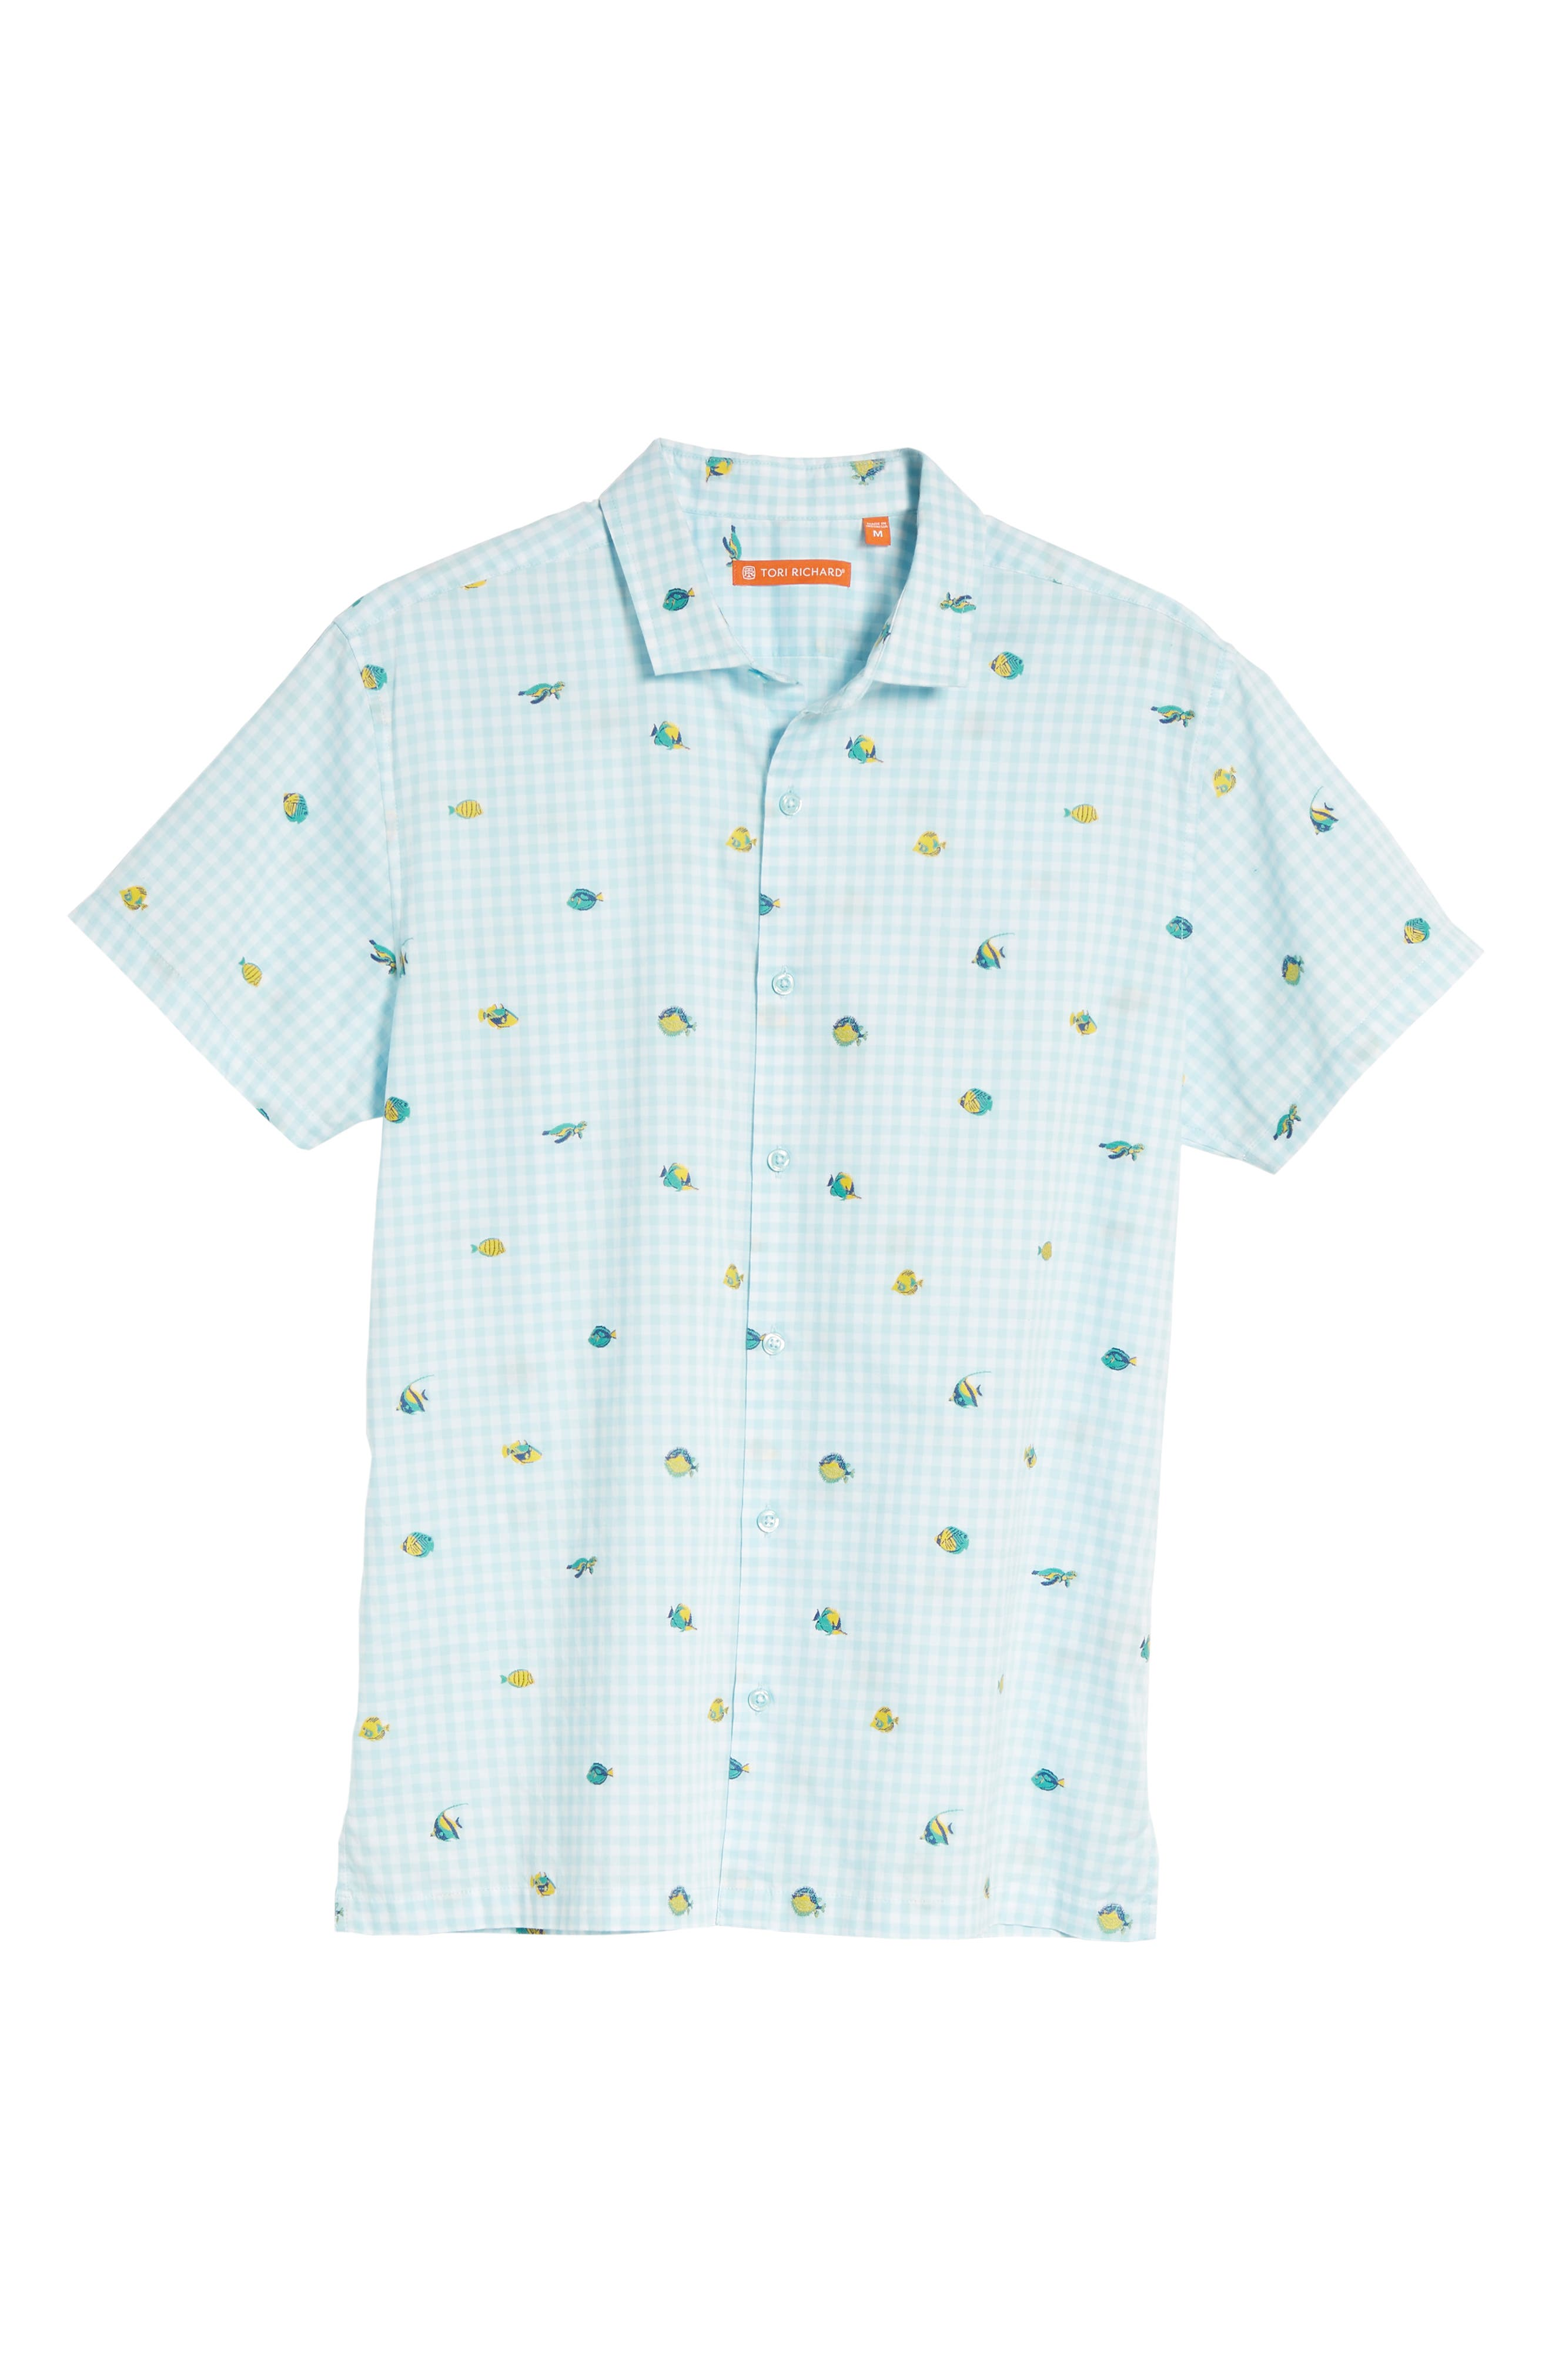 Picnic Reef Trim Fit Embroidered Camp Shirt,                             Alternate thumbnail 6, color,                             SKY BLUE